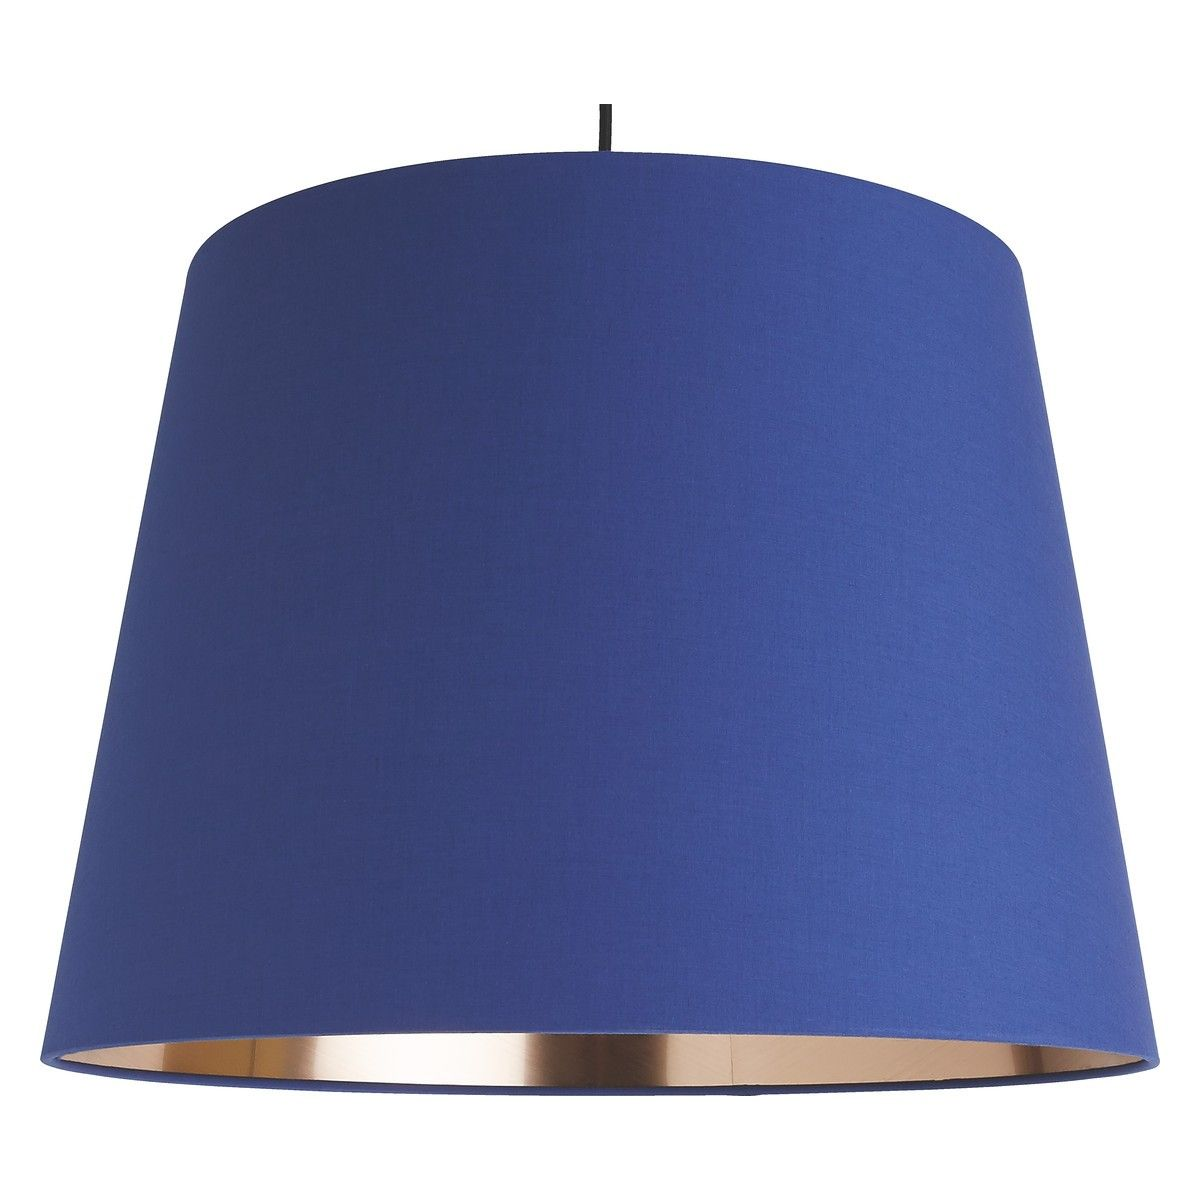 GRANDE Grande blue/copper large tapered lampshade D51 x